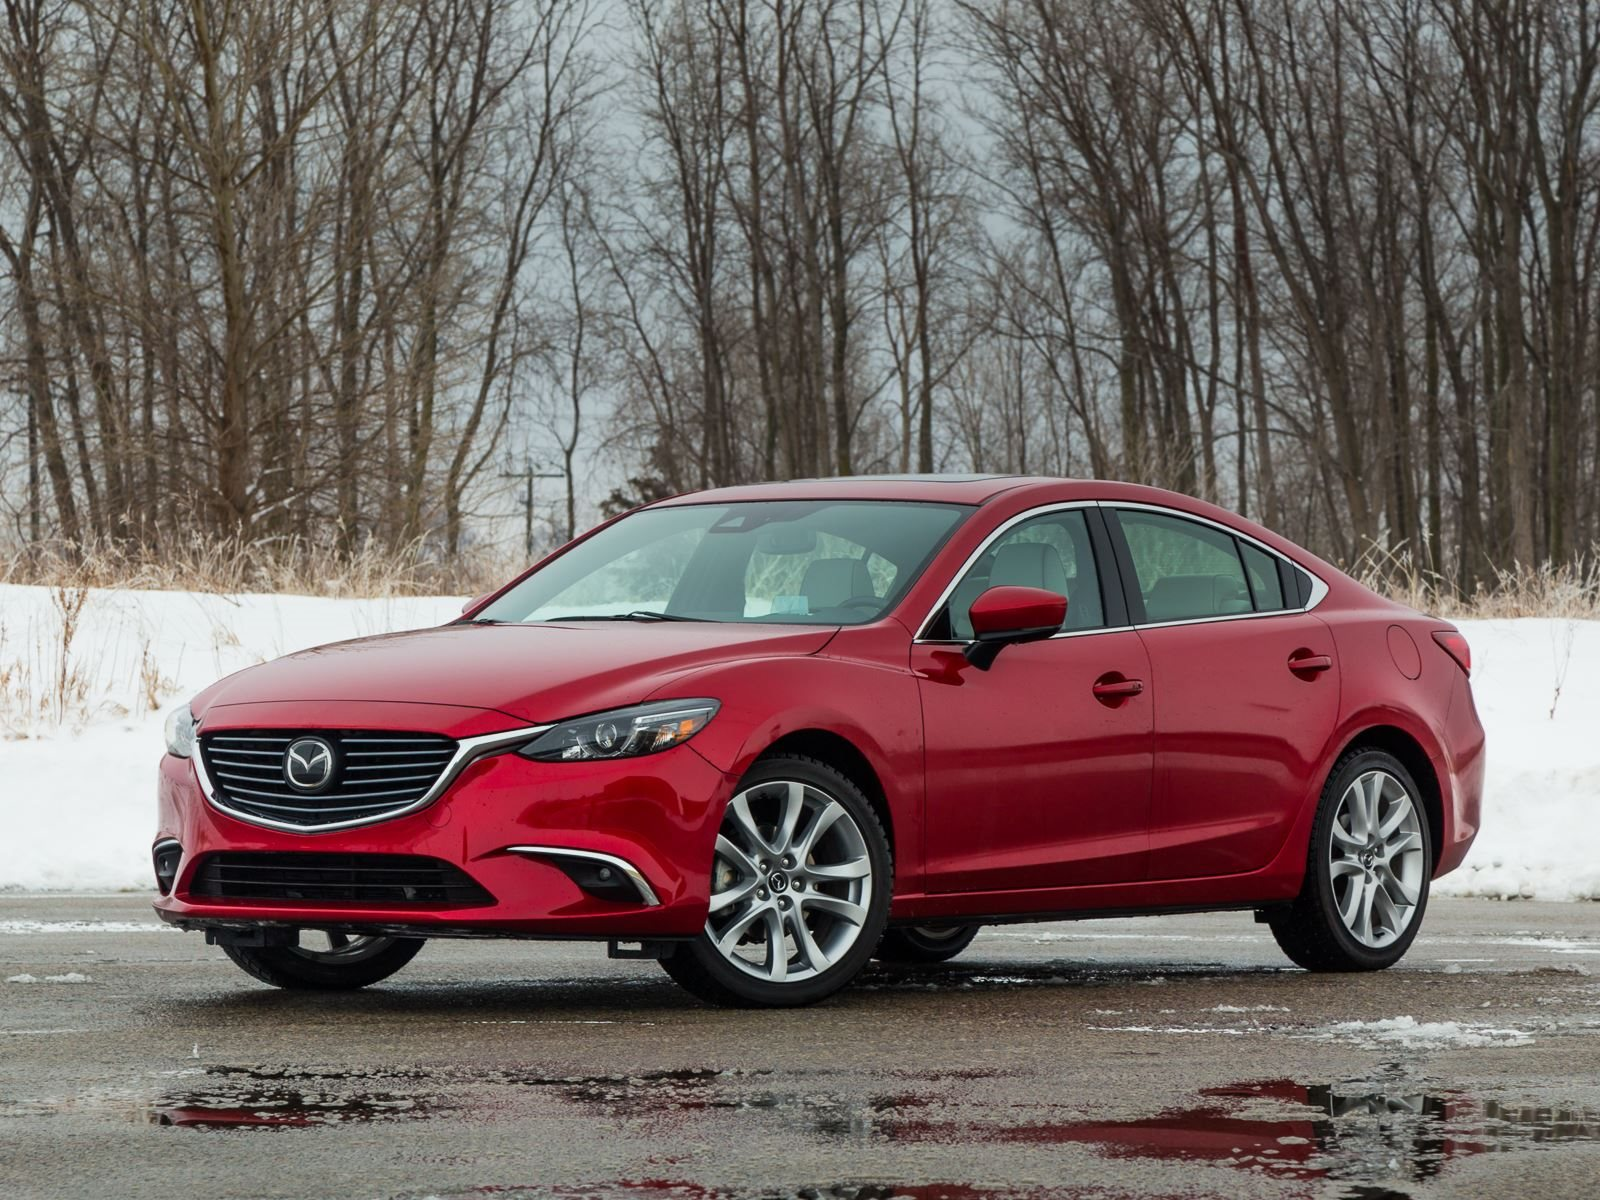 2017 Mazda 6 Test Drive Review: A Beautiful Sedan That Needs More Love -  CarBuzz